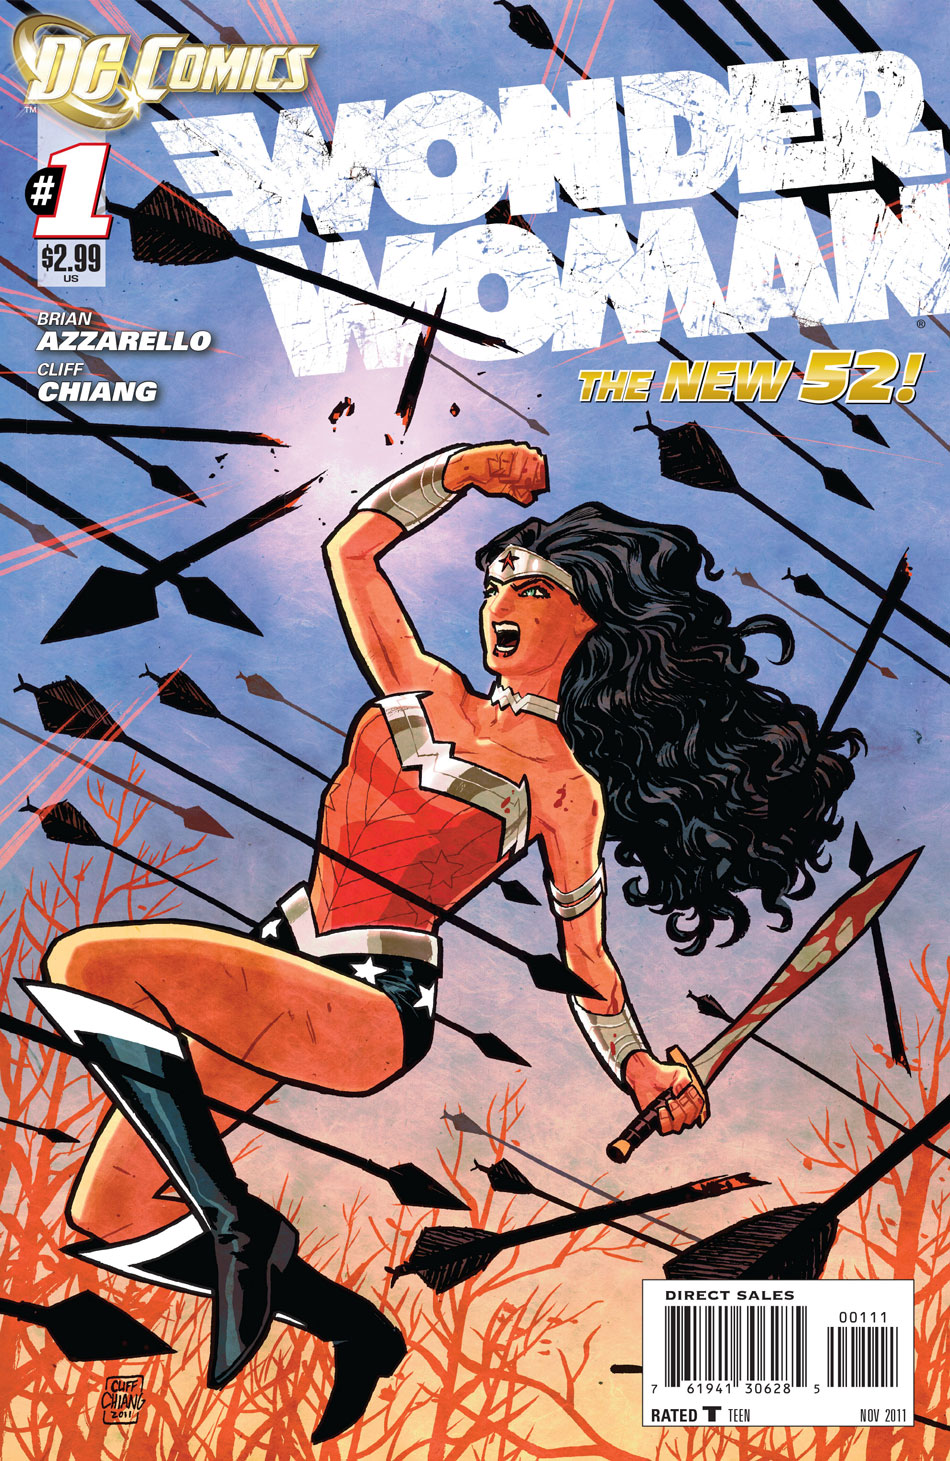 Wonder Woman #1 cover by Cliff Chiang